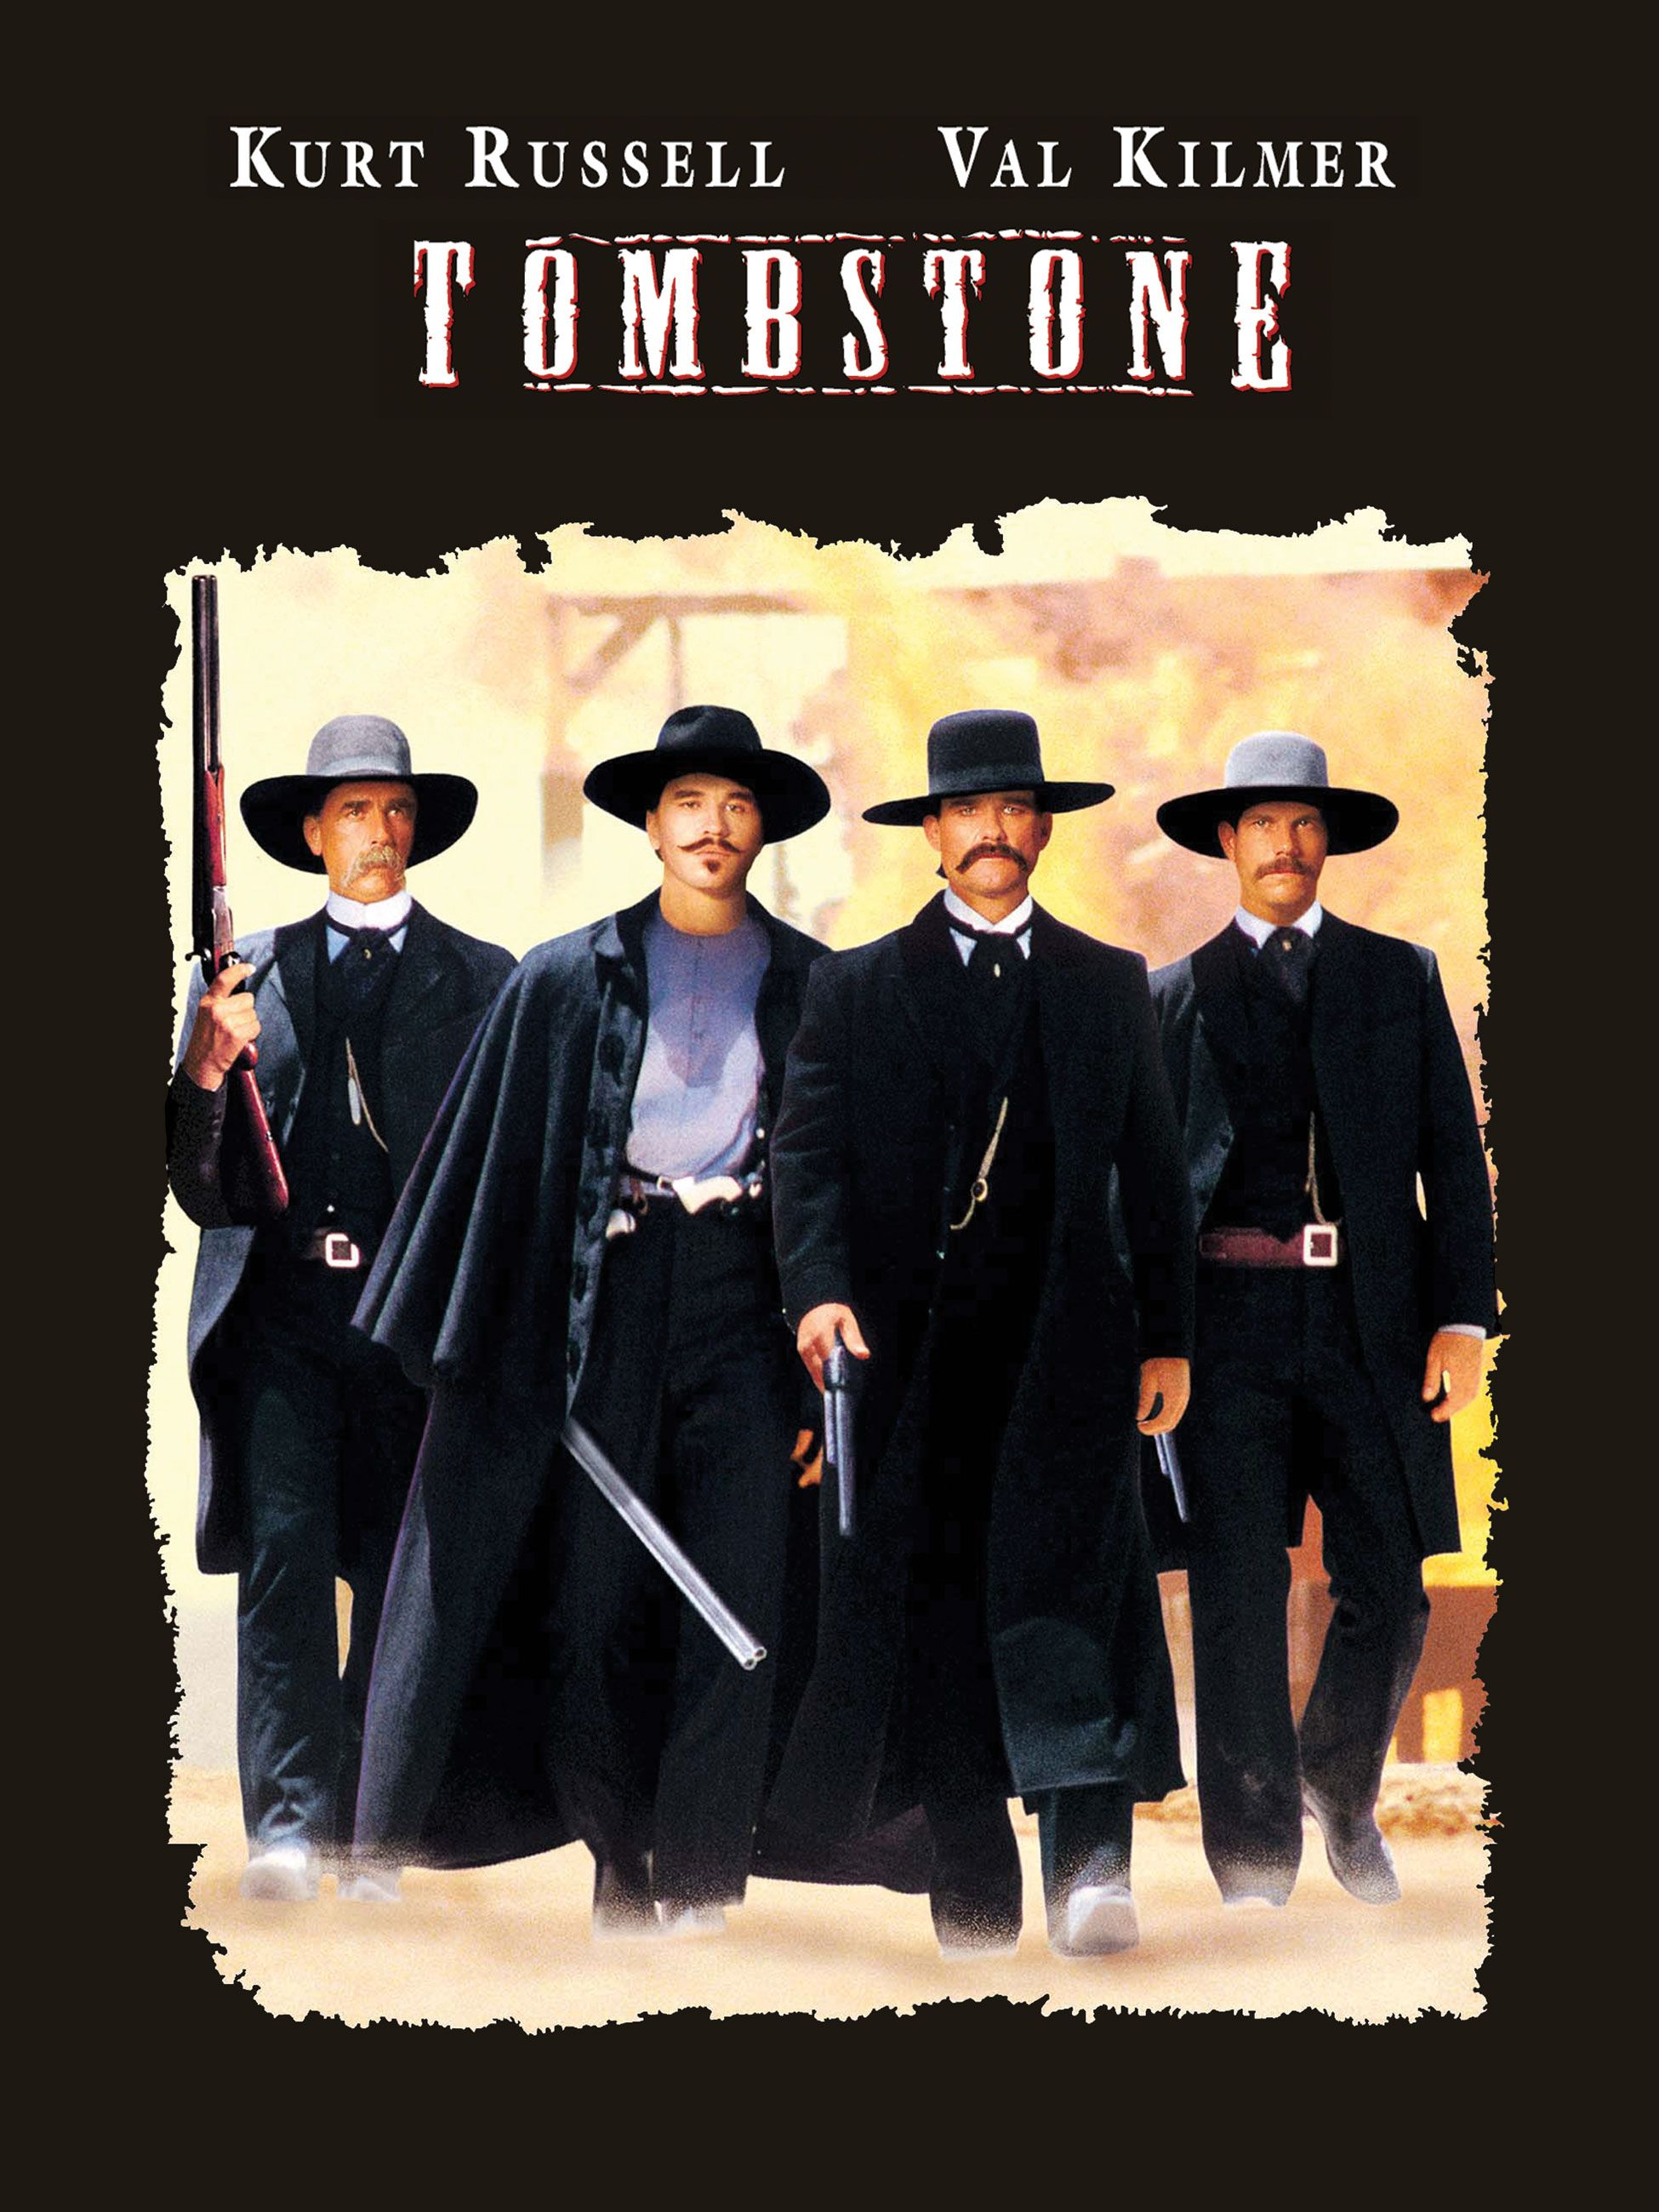 Tombstone (1993) - Directed by: George P. CosmatosStarring: Kurt Russell, Val Kilmer, Bill Paxton, Sam ElliotRated: R for ViolenceRunning Time: 2h 15mTMM Score: 4 StarsSTRENGTHS: Acting, Setting, Action, Val KilmerWEAKNESSES: Bloated Runtime, Thin Story, Weak Villains